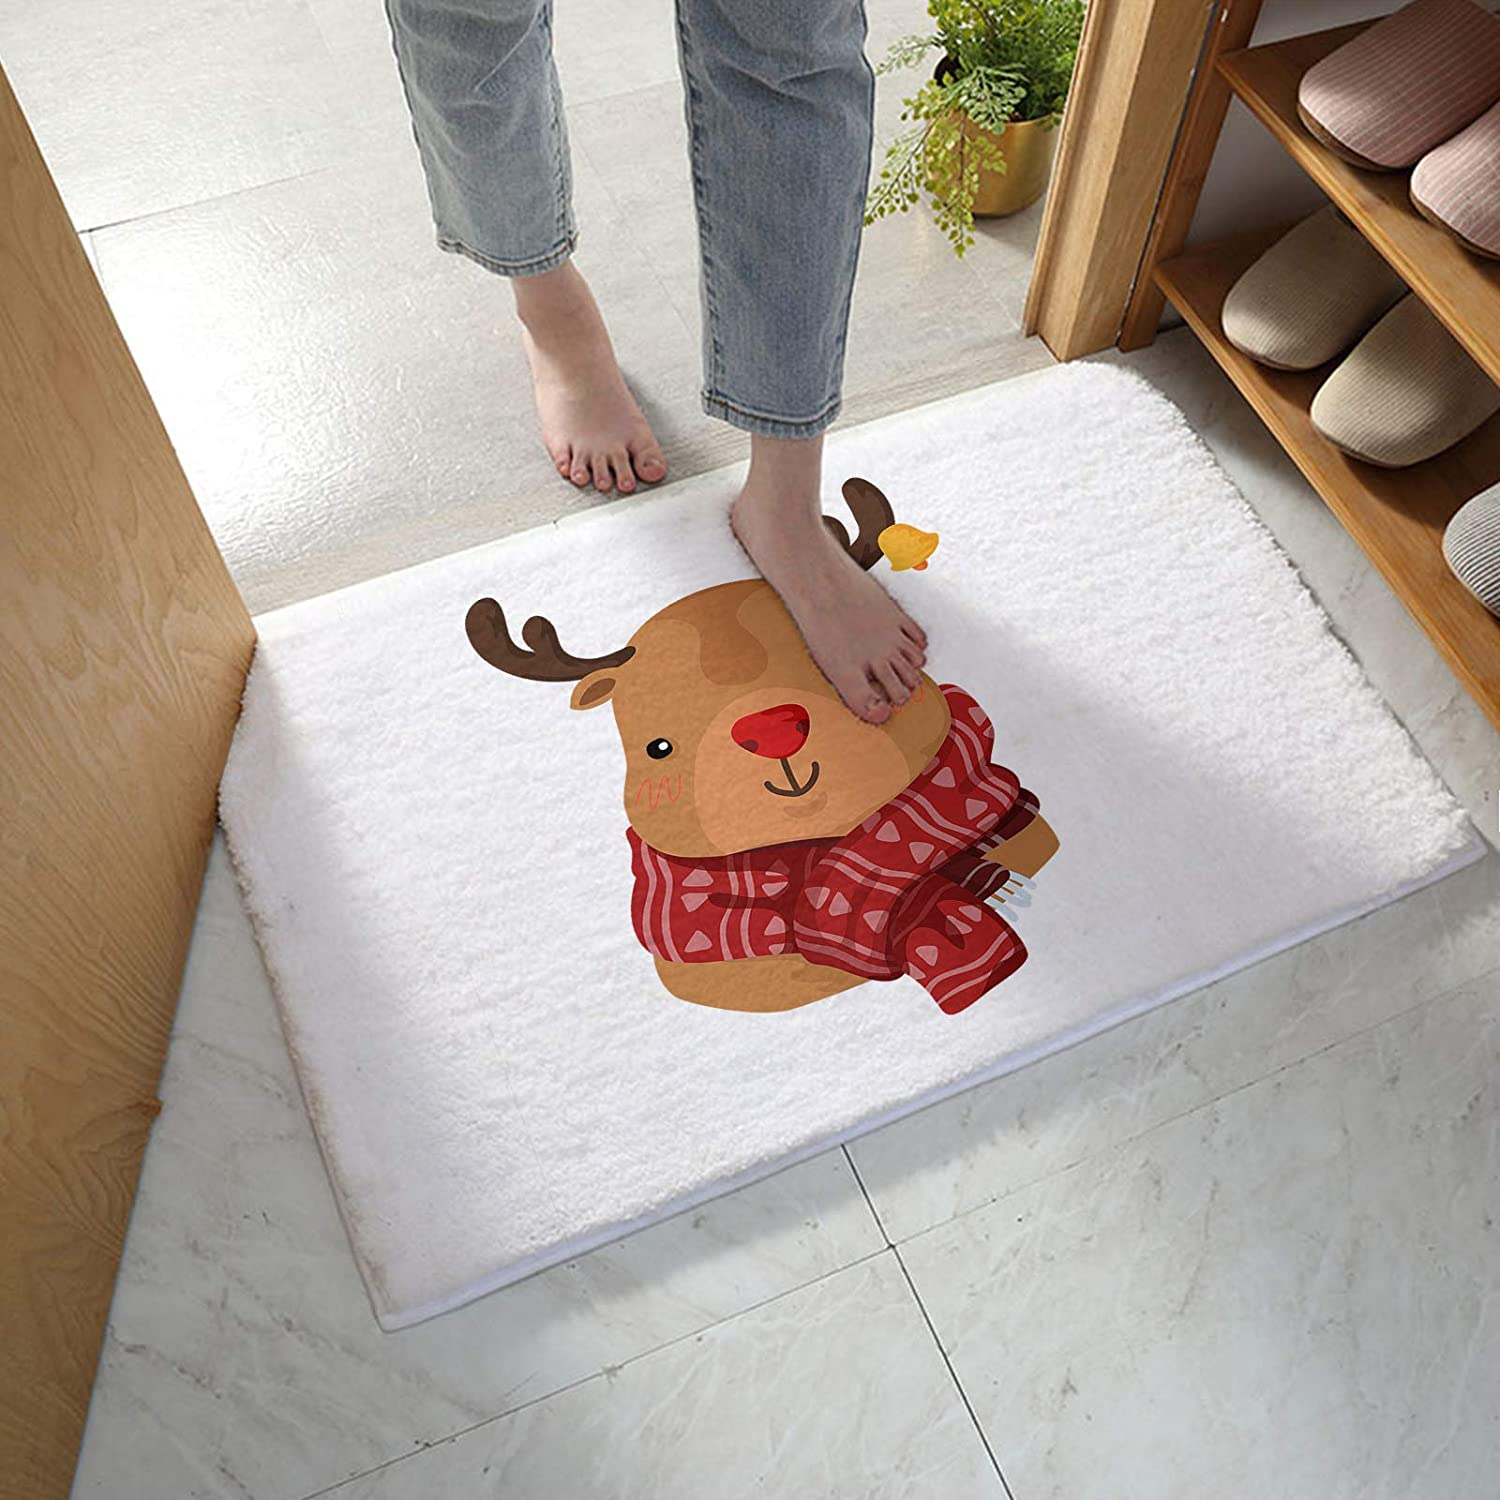 MuswannaA Bathroom Rug Bath New sales Limited time trial price Mat Christmas Red Elk with Cartoon S